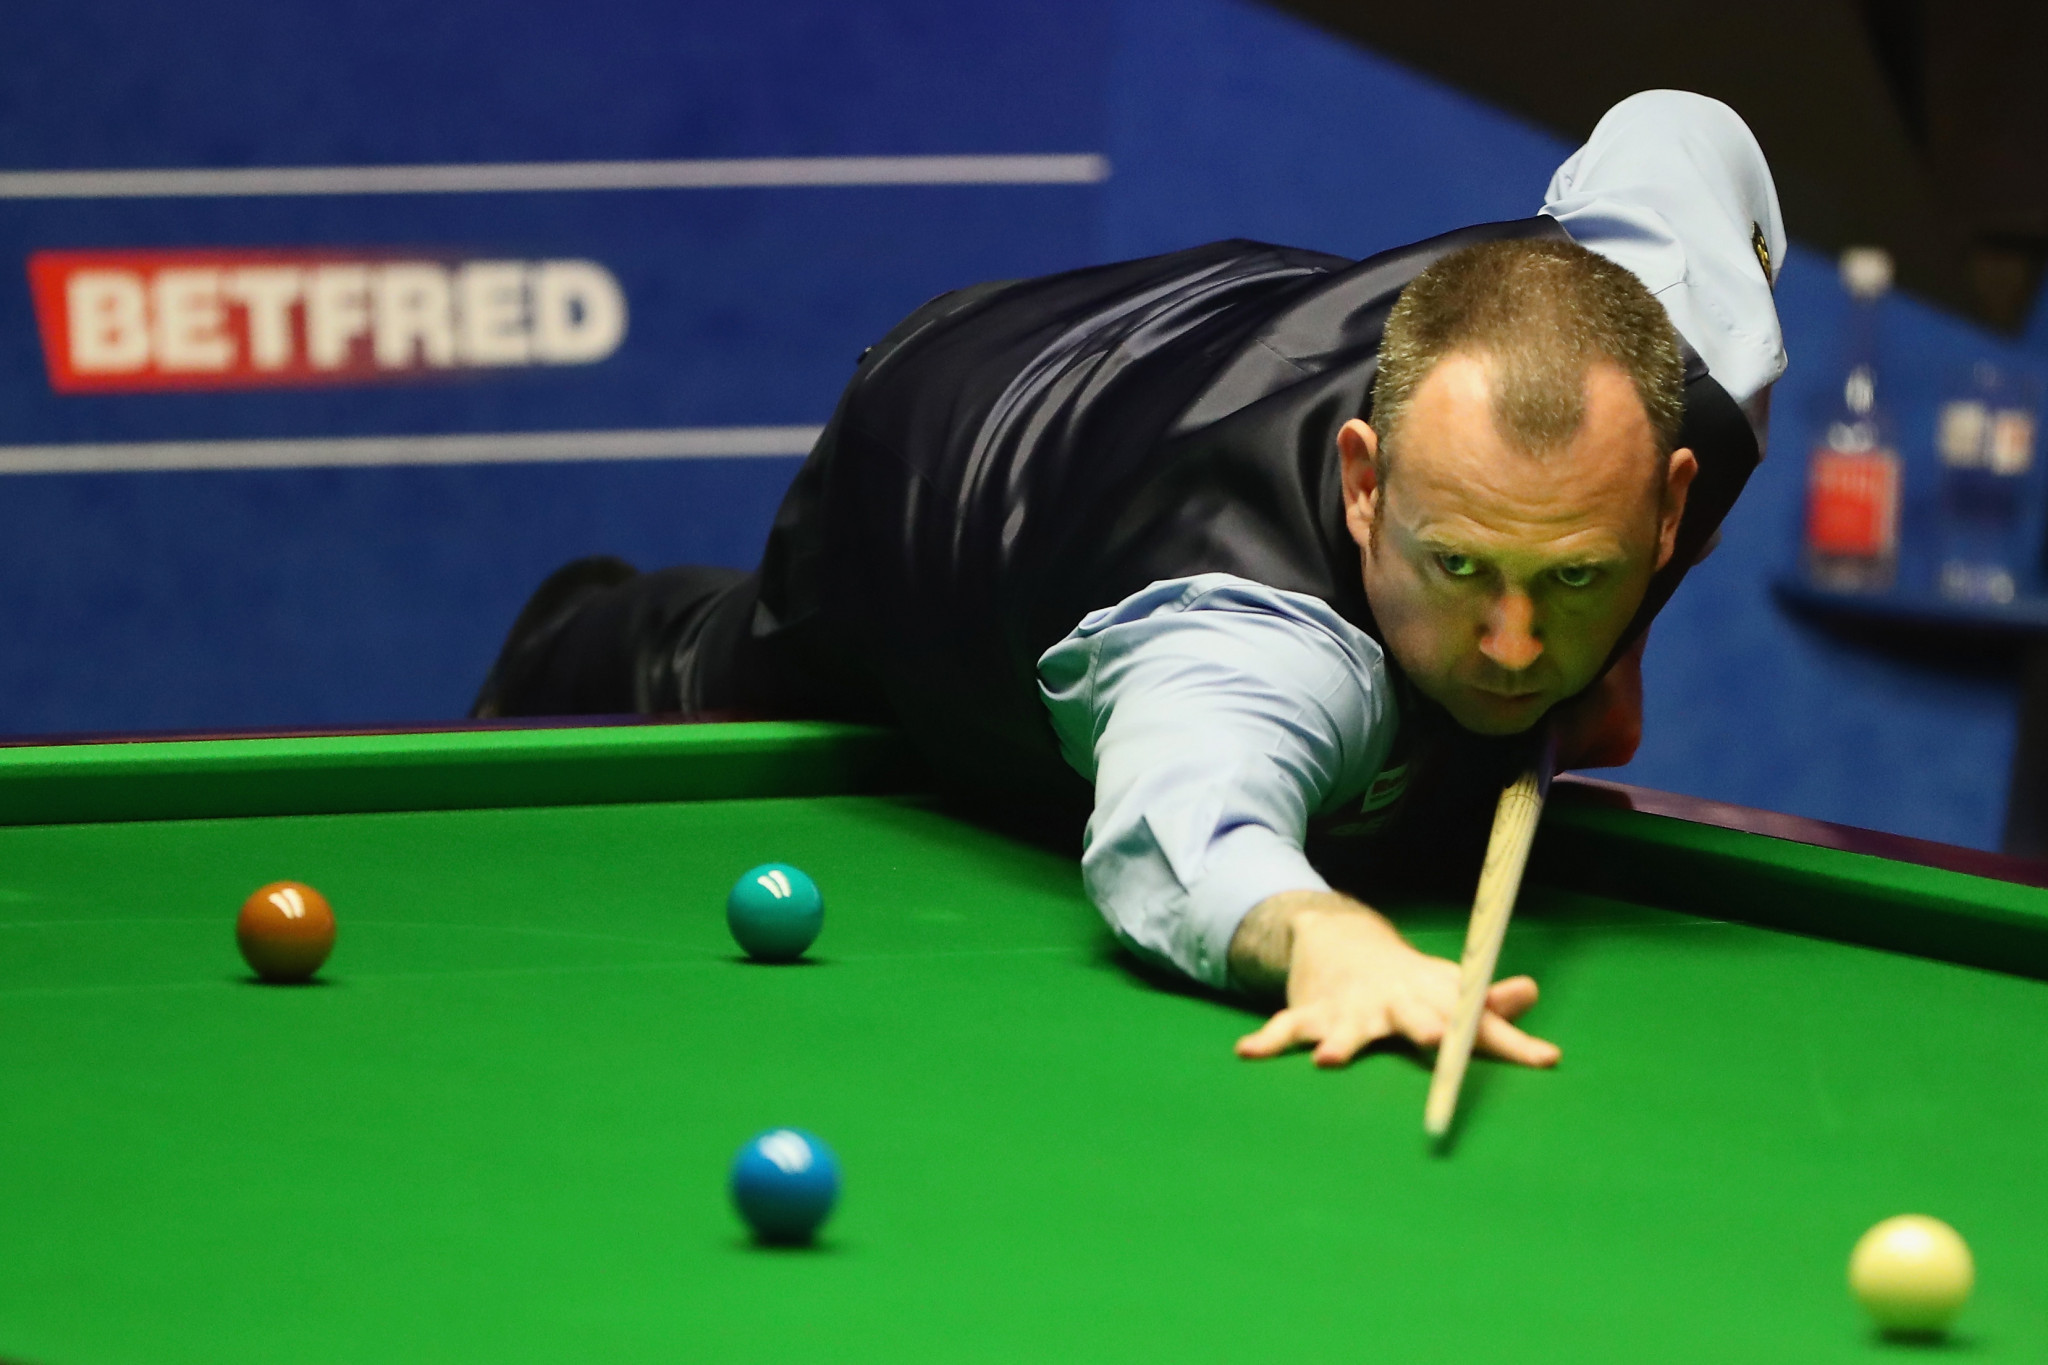 Williams earns three frame lead after first day of World Snooker Championship final